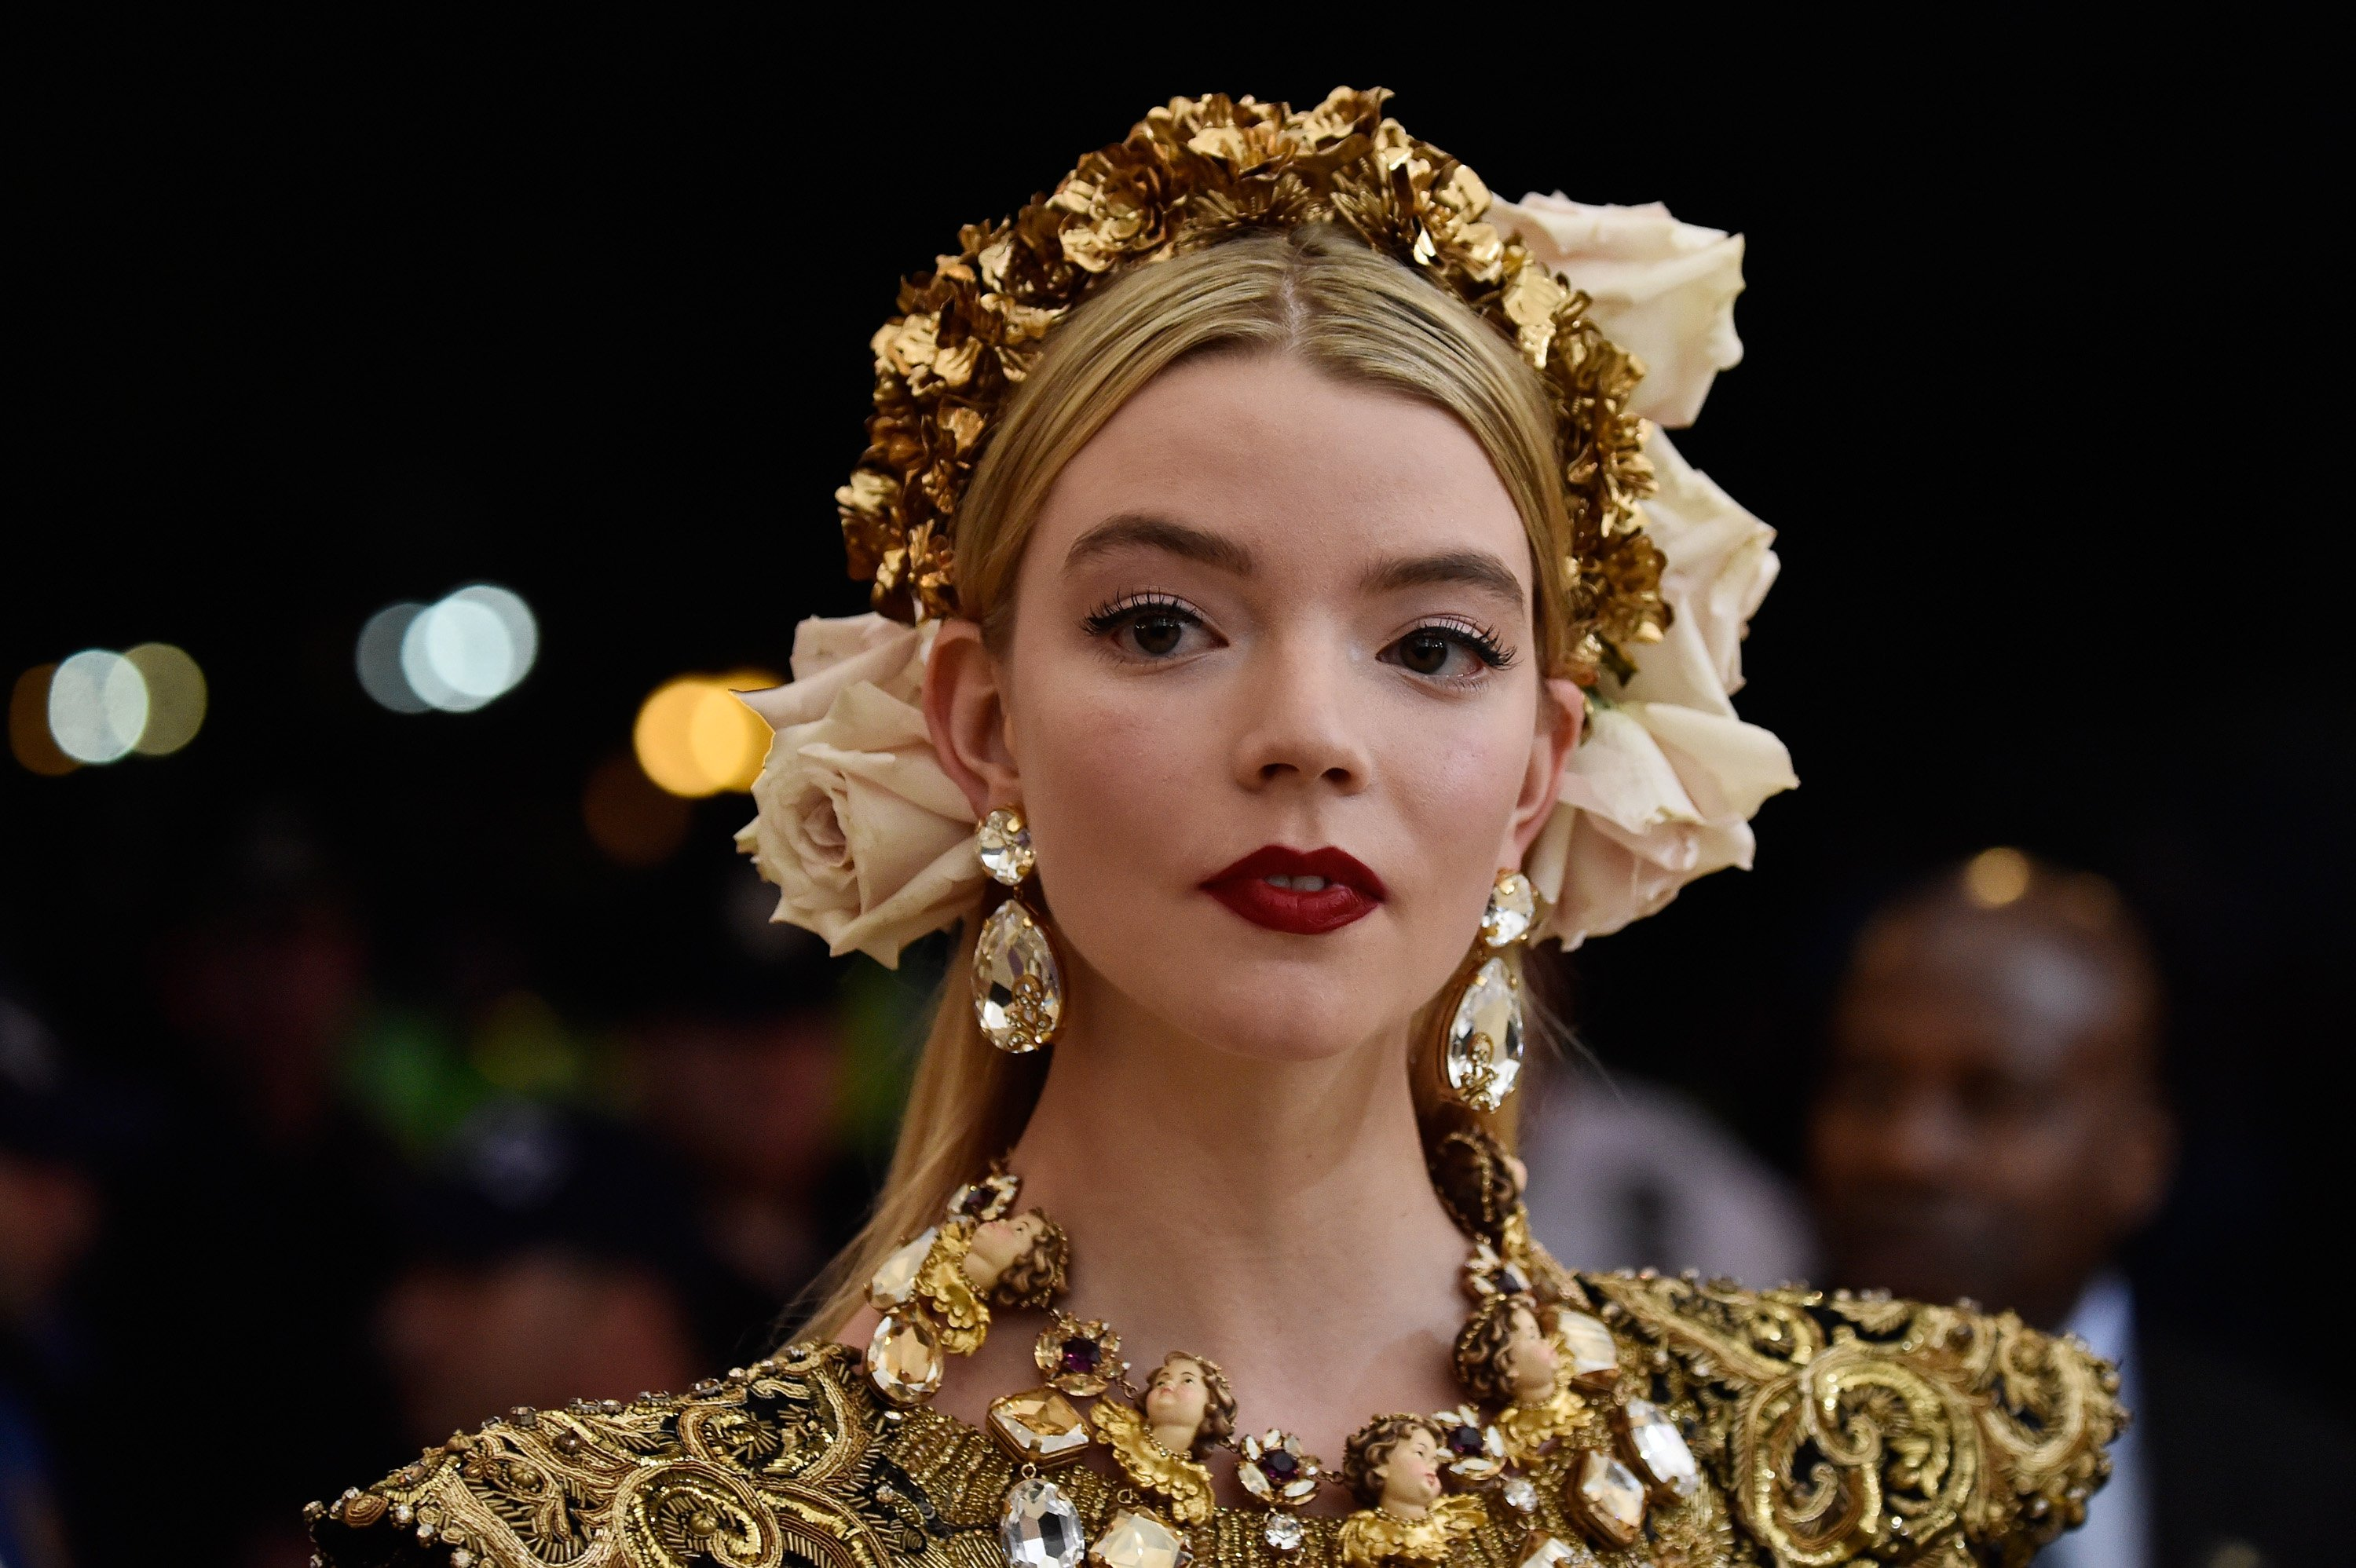 Anya Taylor-Joy at the Heavenly Bodies: Fashion & The Catholic Imagination Costume Institute Gala at The Metropolitan Museum of Art in New York City | Photo: Frazer Harrison/FilmMagic via Getty Images